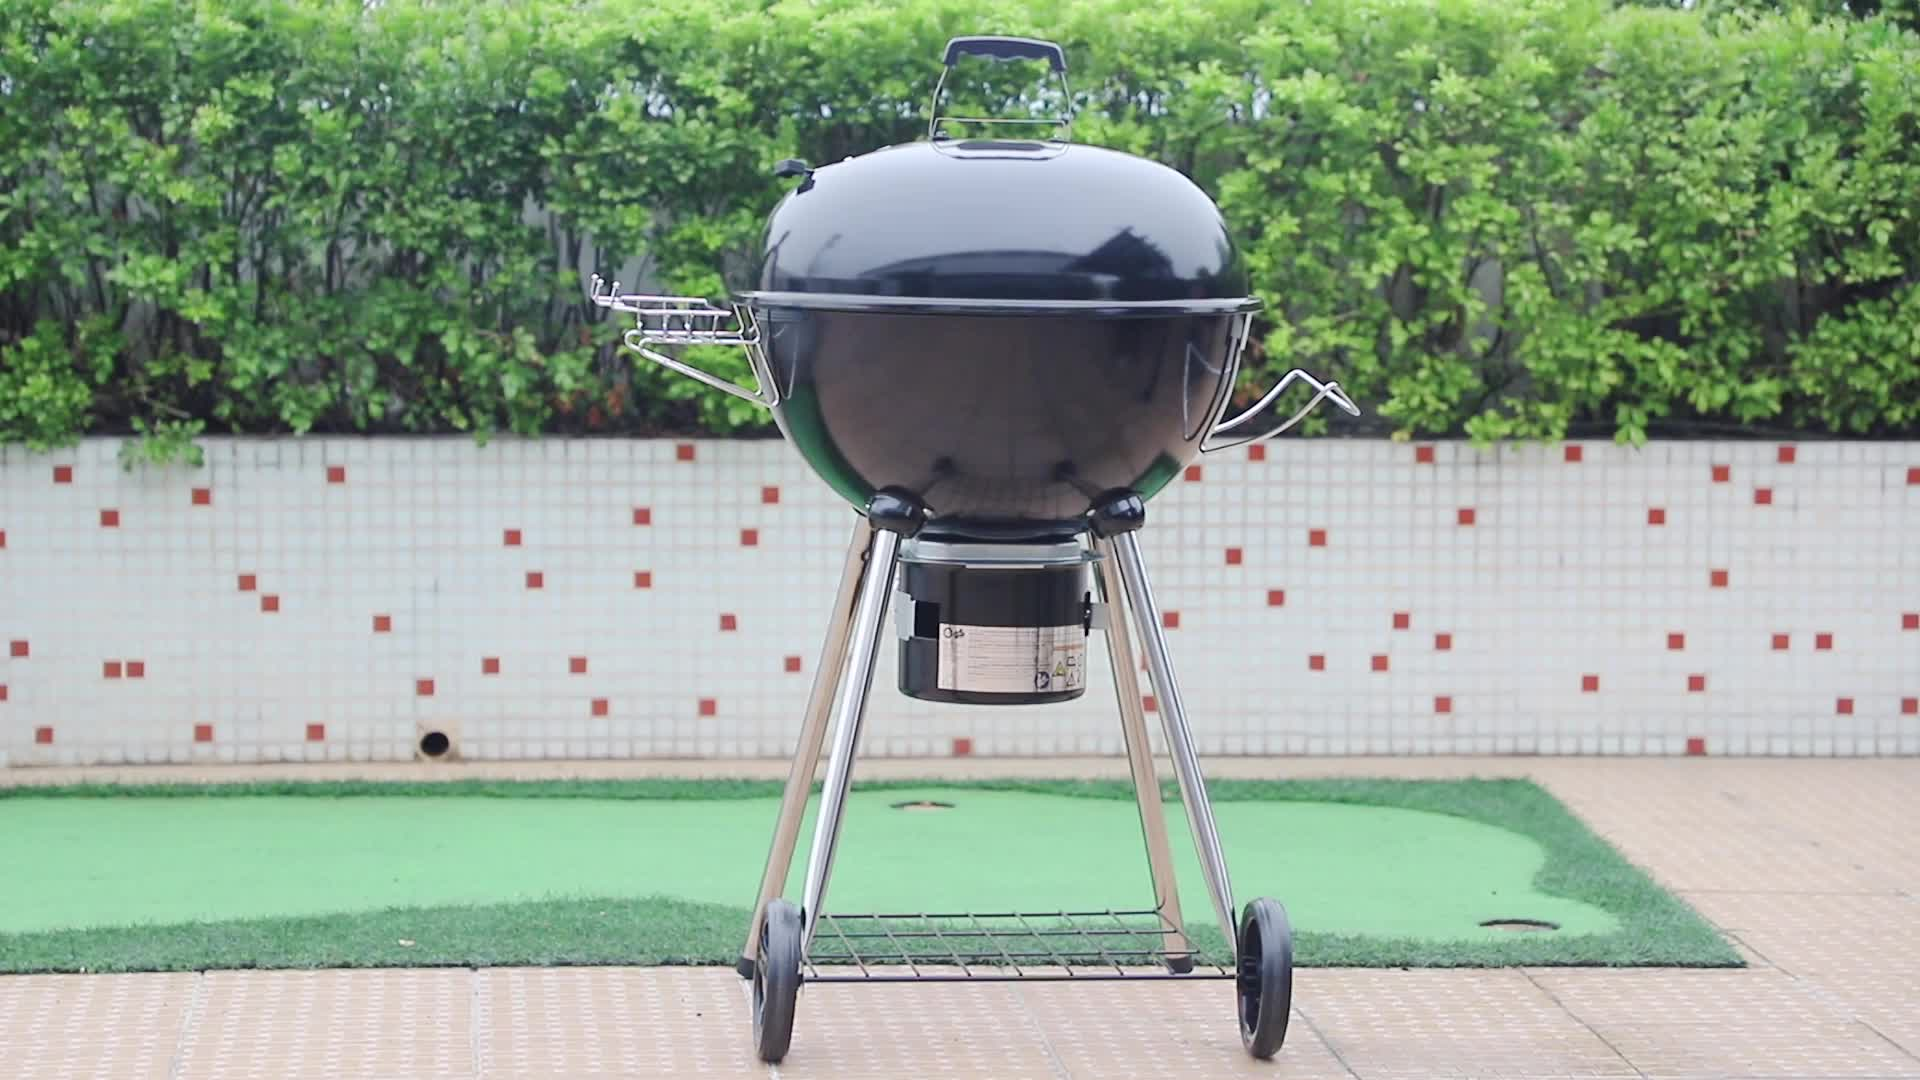 2019 Hot Selling Black Outdoor Portable Large Chicken Machine Charcoal Grills